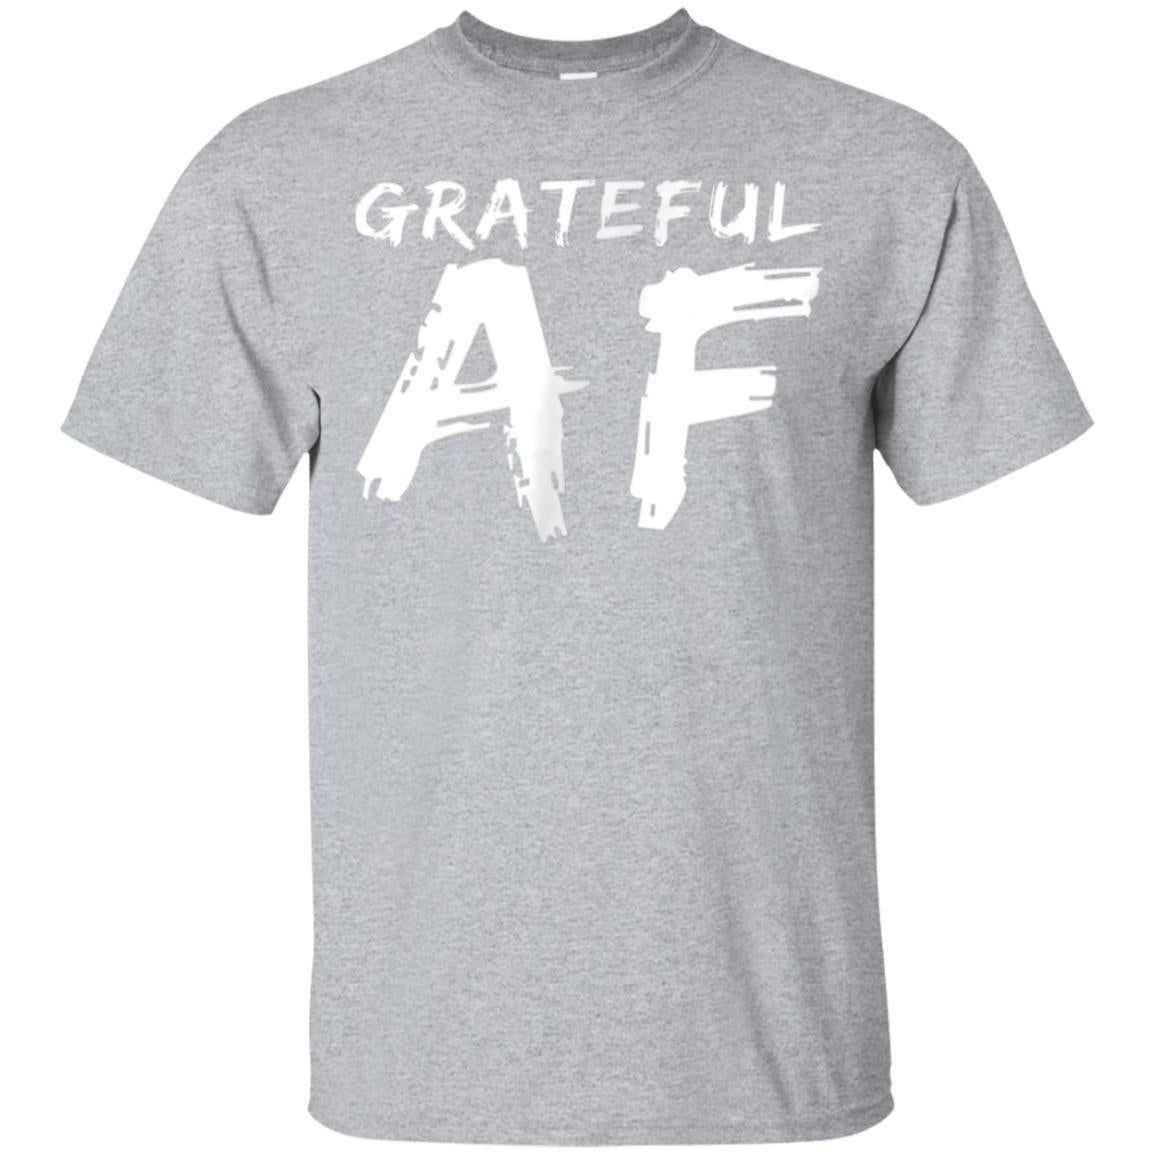 Grateful AF NA,AA, Anonymous Clothes Shirt Men Women Gift 99promocode